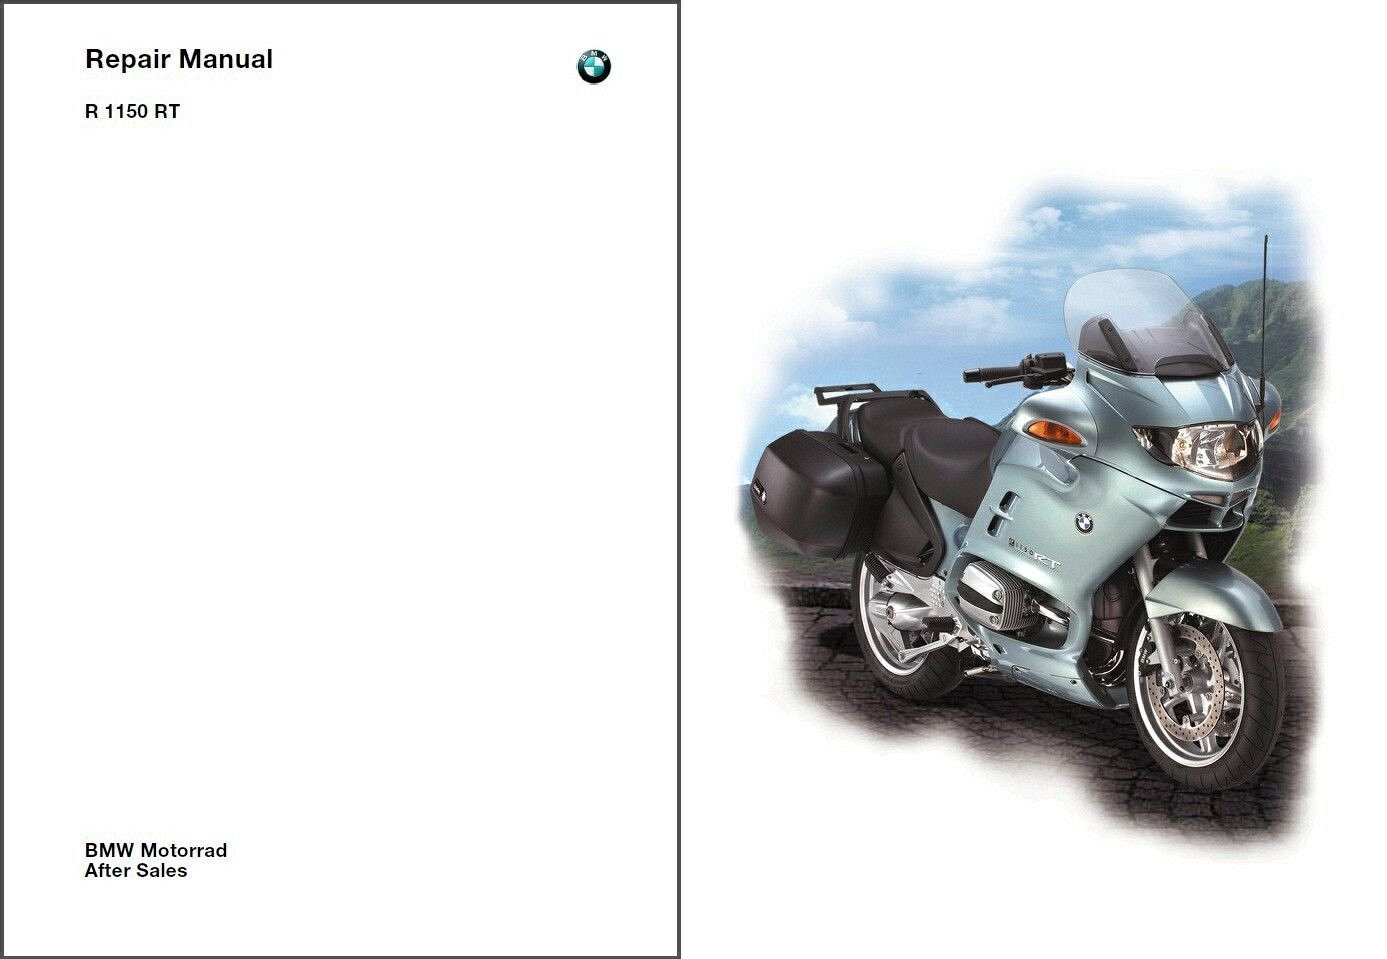 2001 2002 2003 2004 bmw r1150rt service manual cd multilingual for rh unisquare com For a 2003 BMW R1150RT Motorcycle Battery 2003 BMW R1150RT Specs